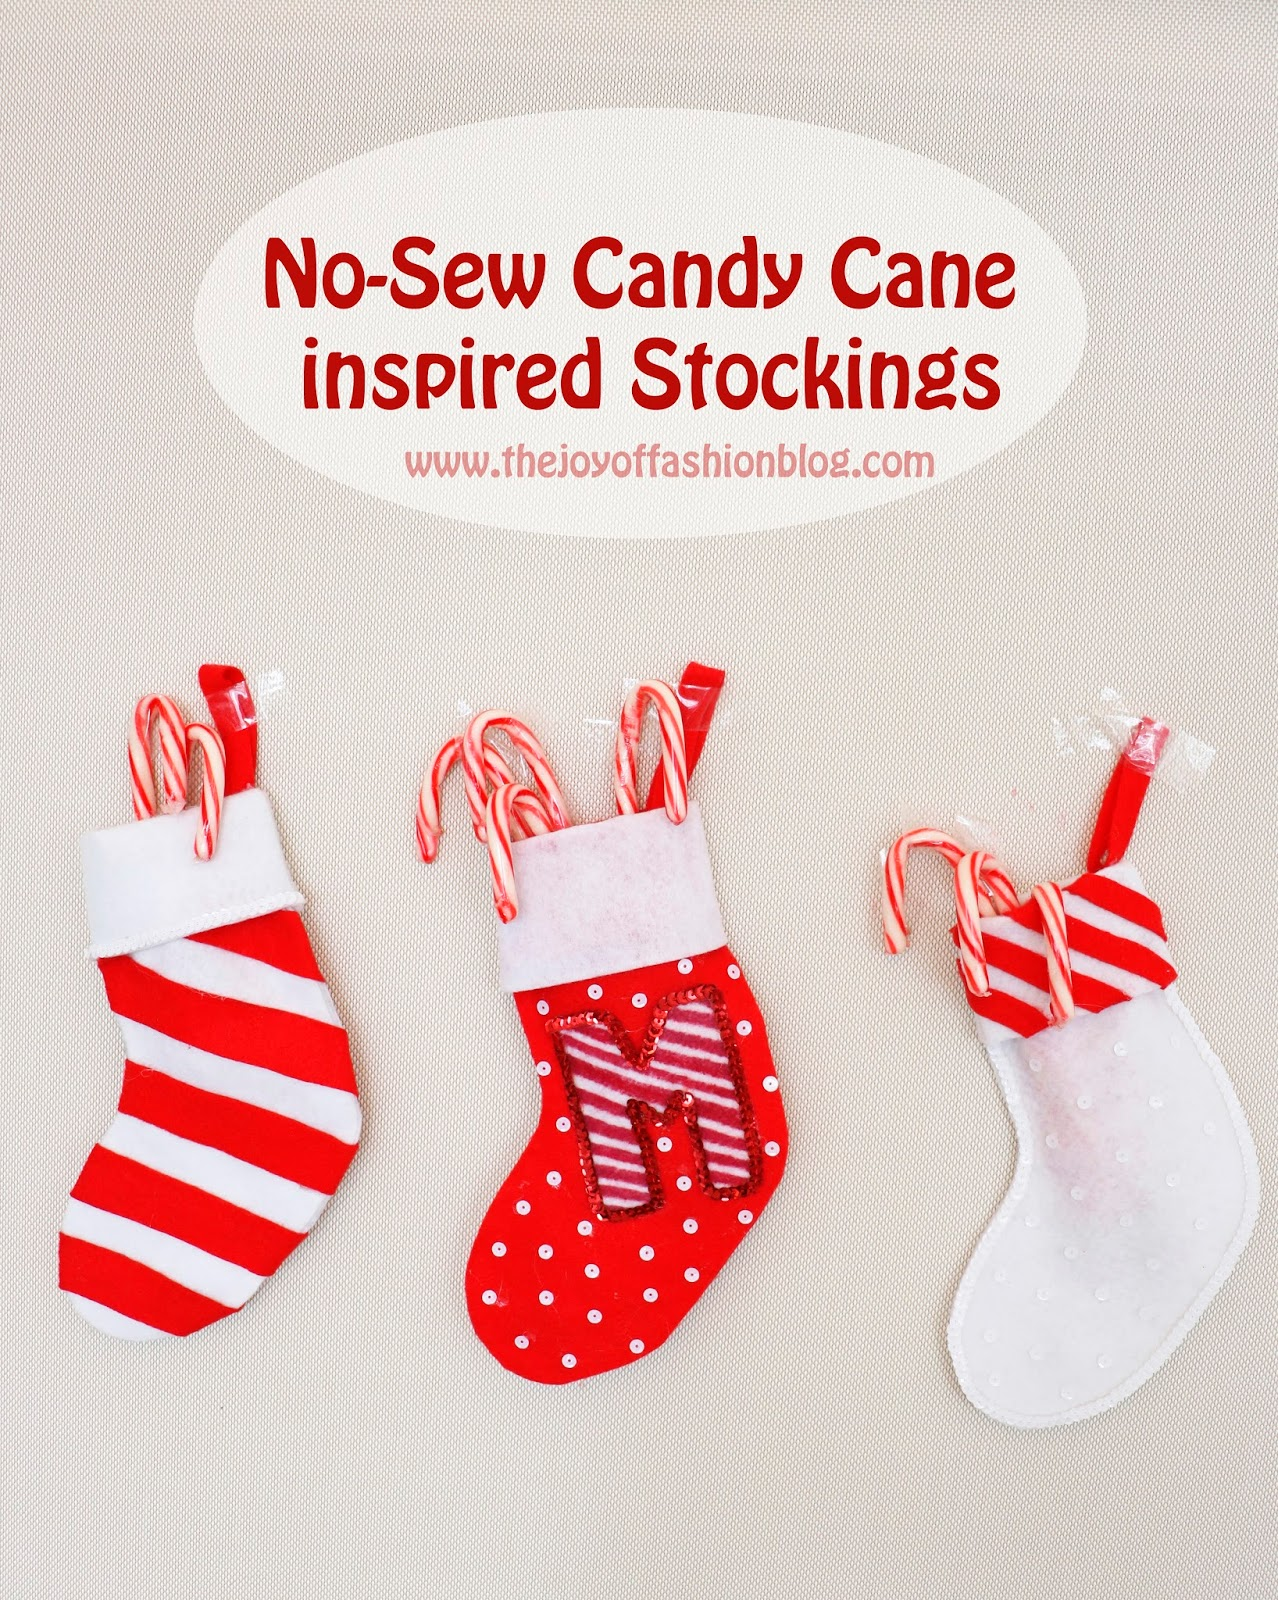 These no-sew stockings are so cute and super easy to make!